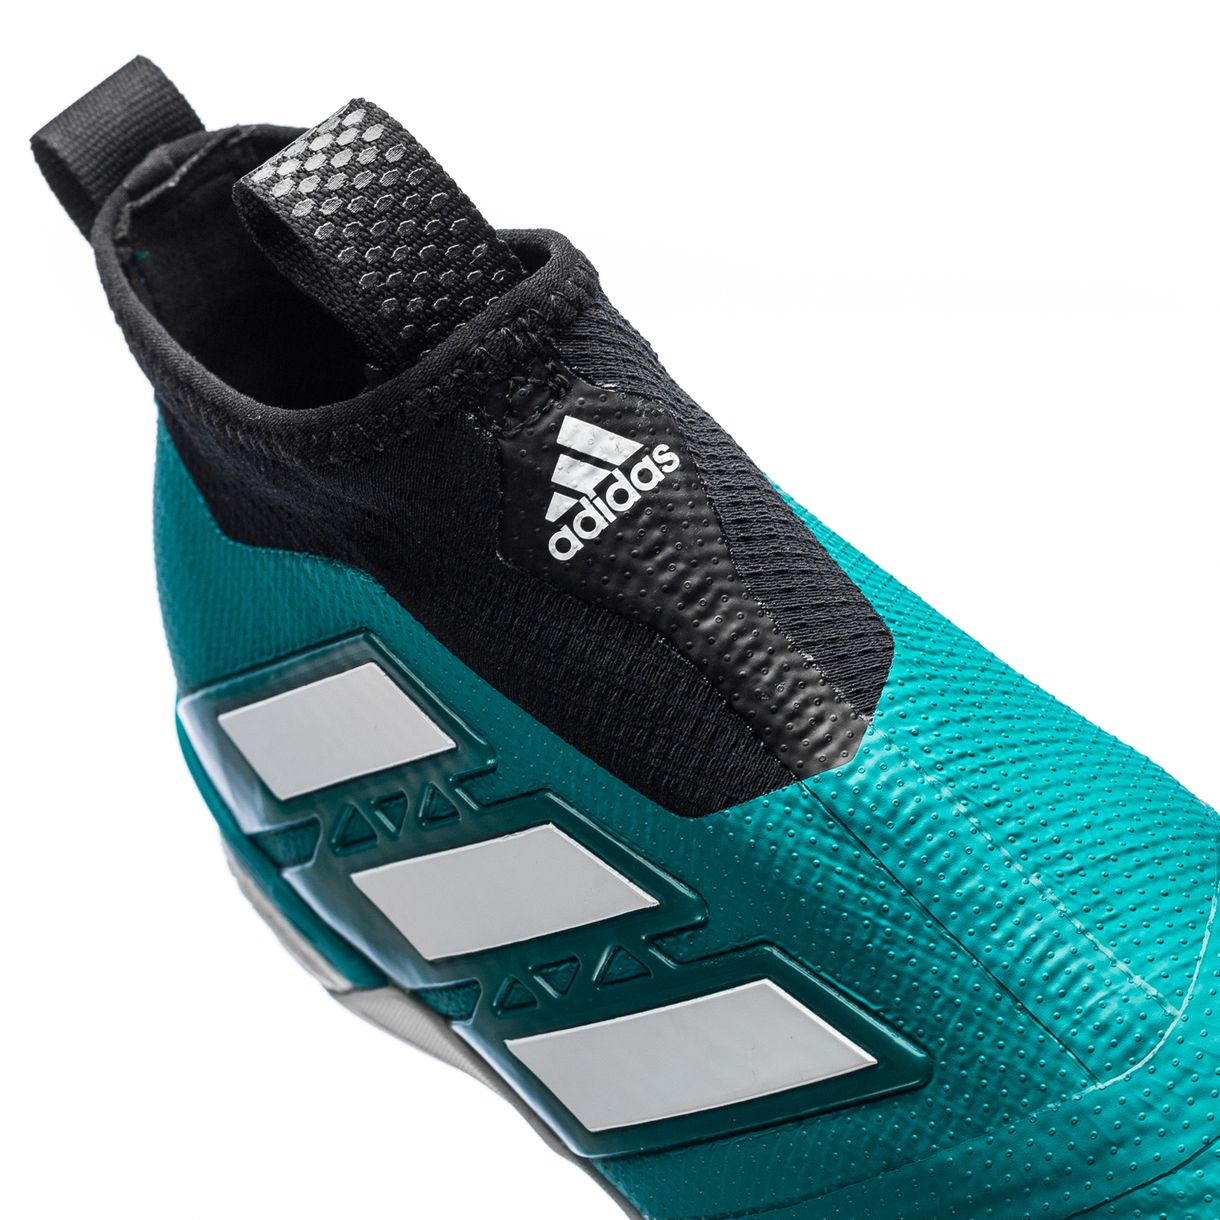 save off efd56 5f92b Adidas ACE Tango 17+ PureControl Boost TF EQT Green Pack ...